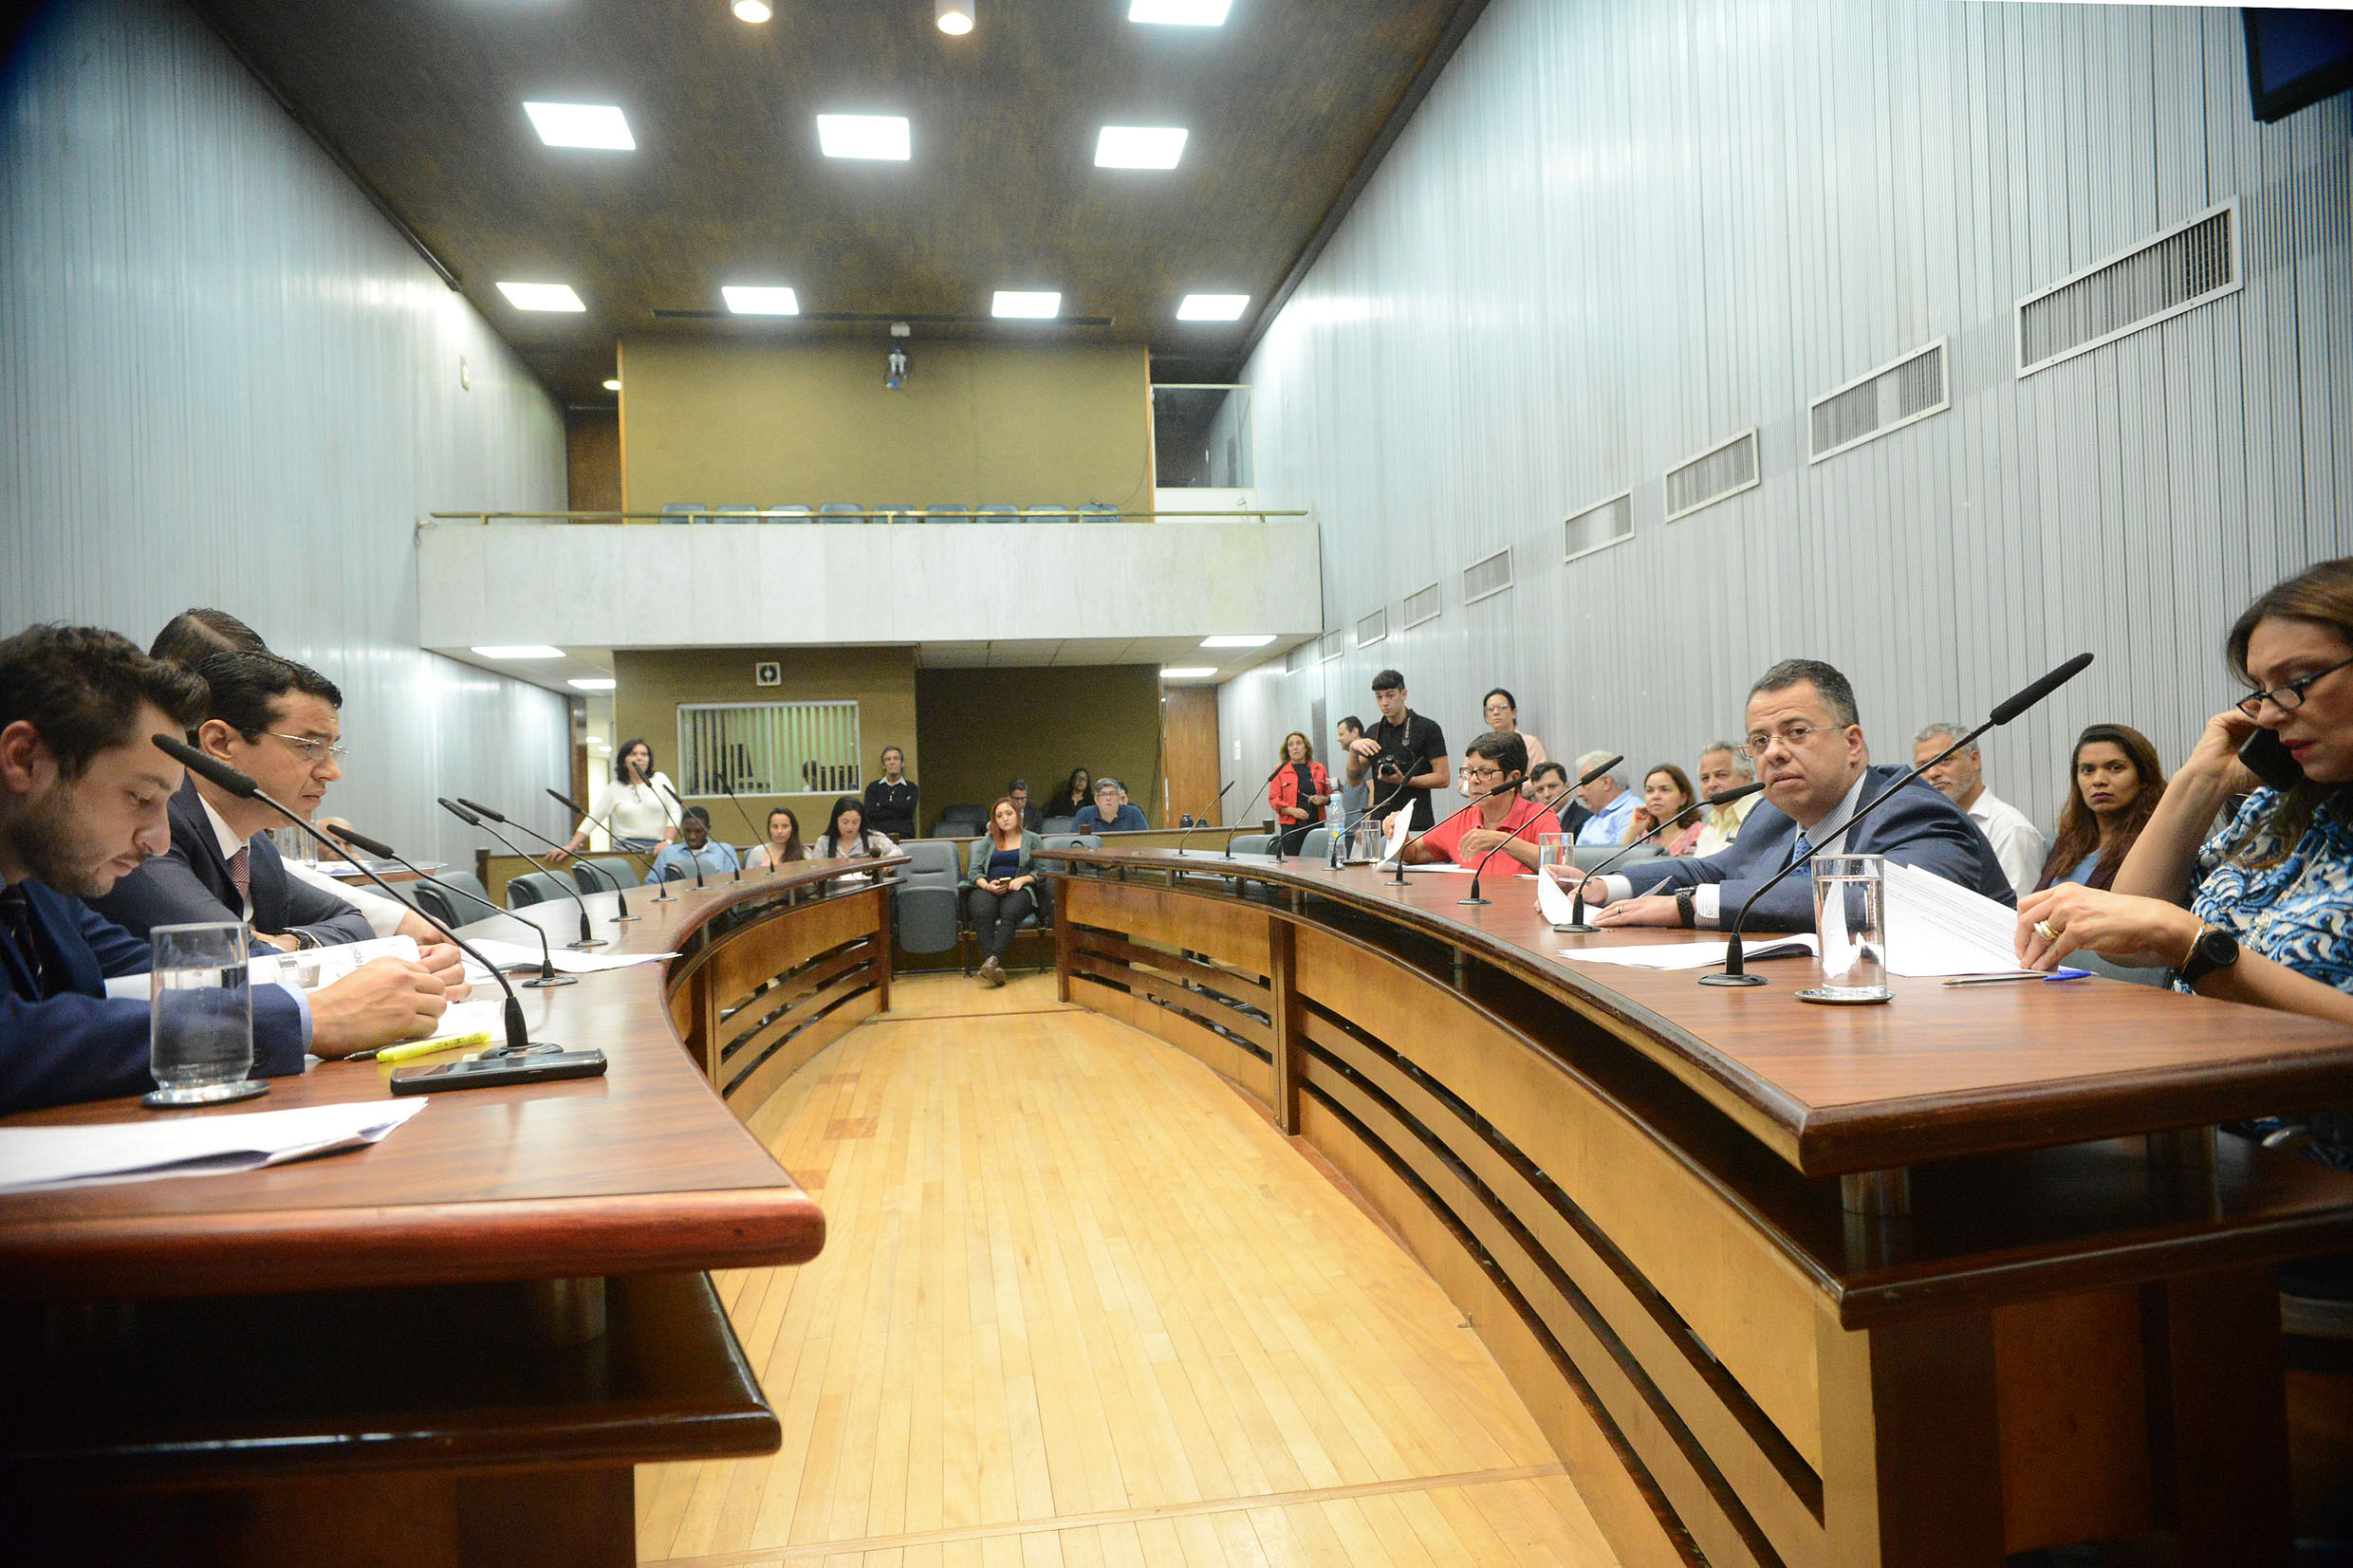 Parlamentares na comissão<a style='float:right' href='https://www3.al.sp.gov.br/repositorio/noticia/N-11-2018/fg228066.jpg' target=_blank><img src='/_img/material-file-download-white.png' width='14px' alt='Clique para baixar a imagem'></a>